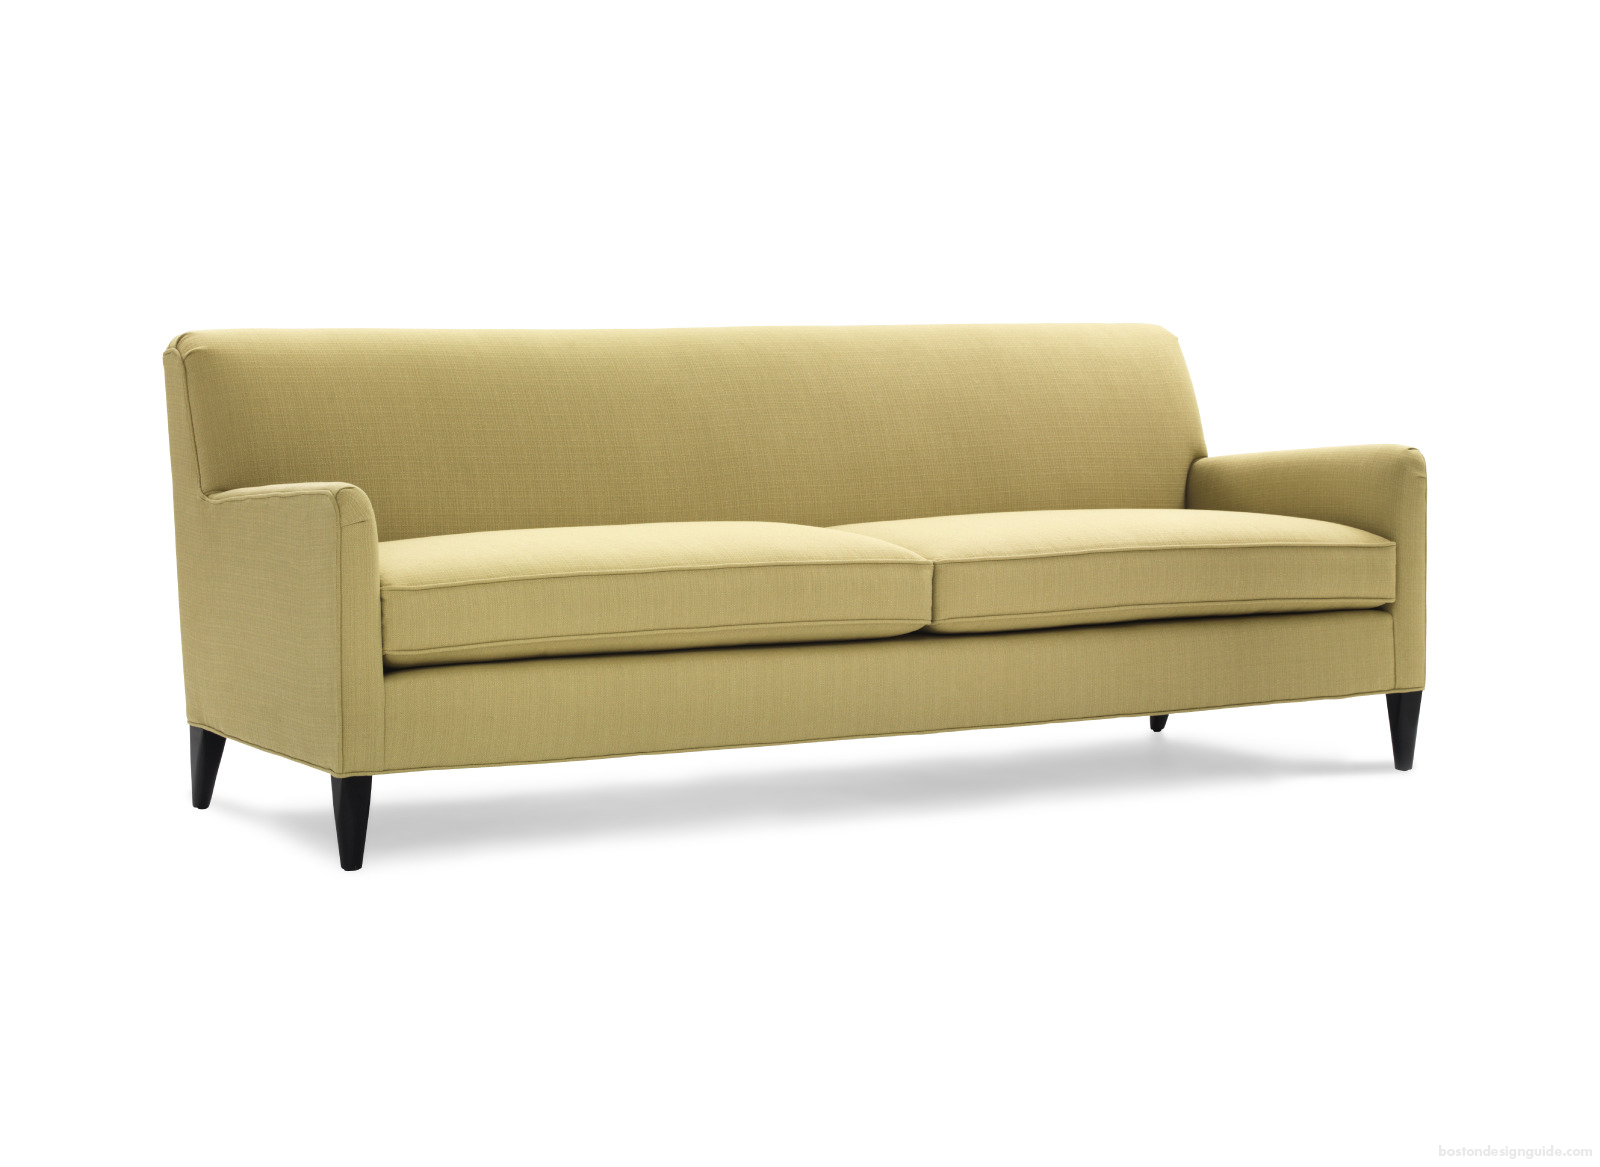 Mitchell gold sofa reviews - Mitchell Gold Bob Williams